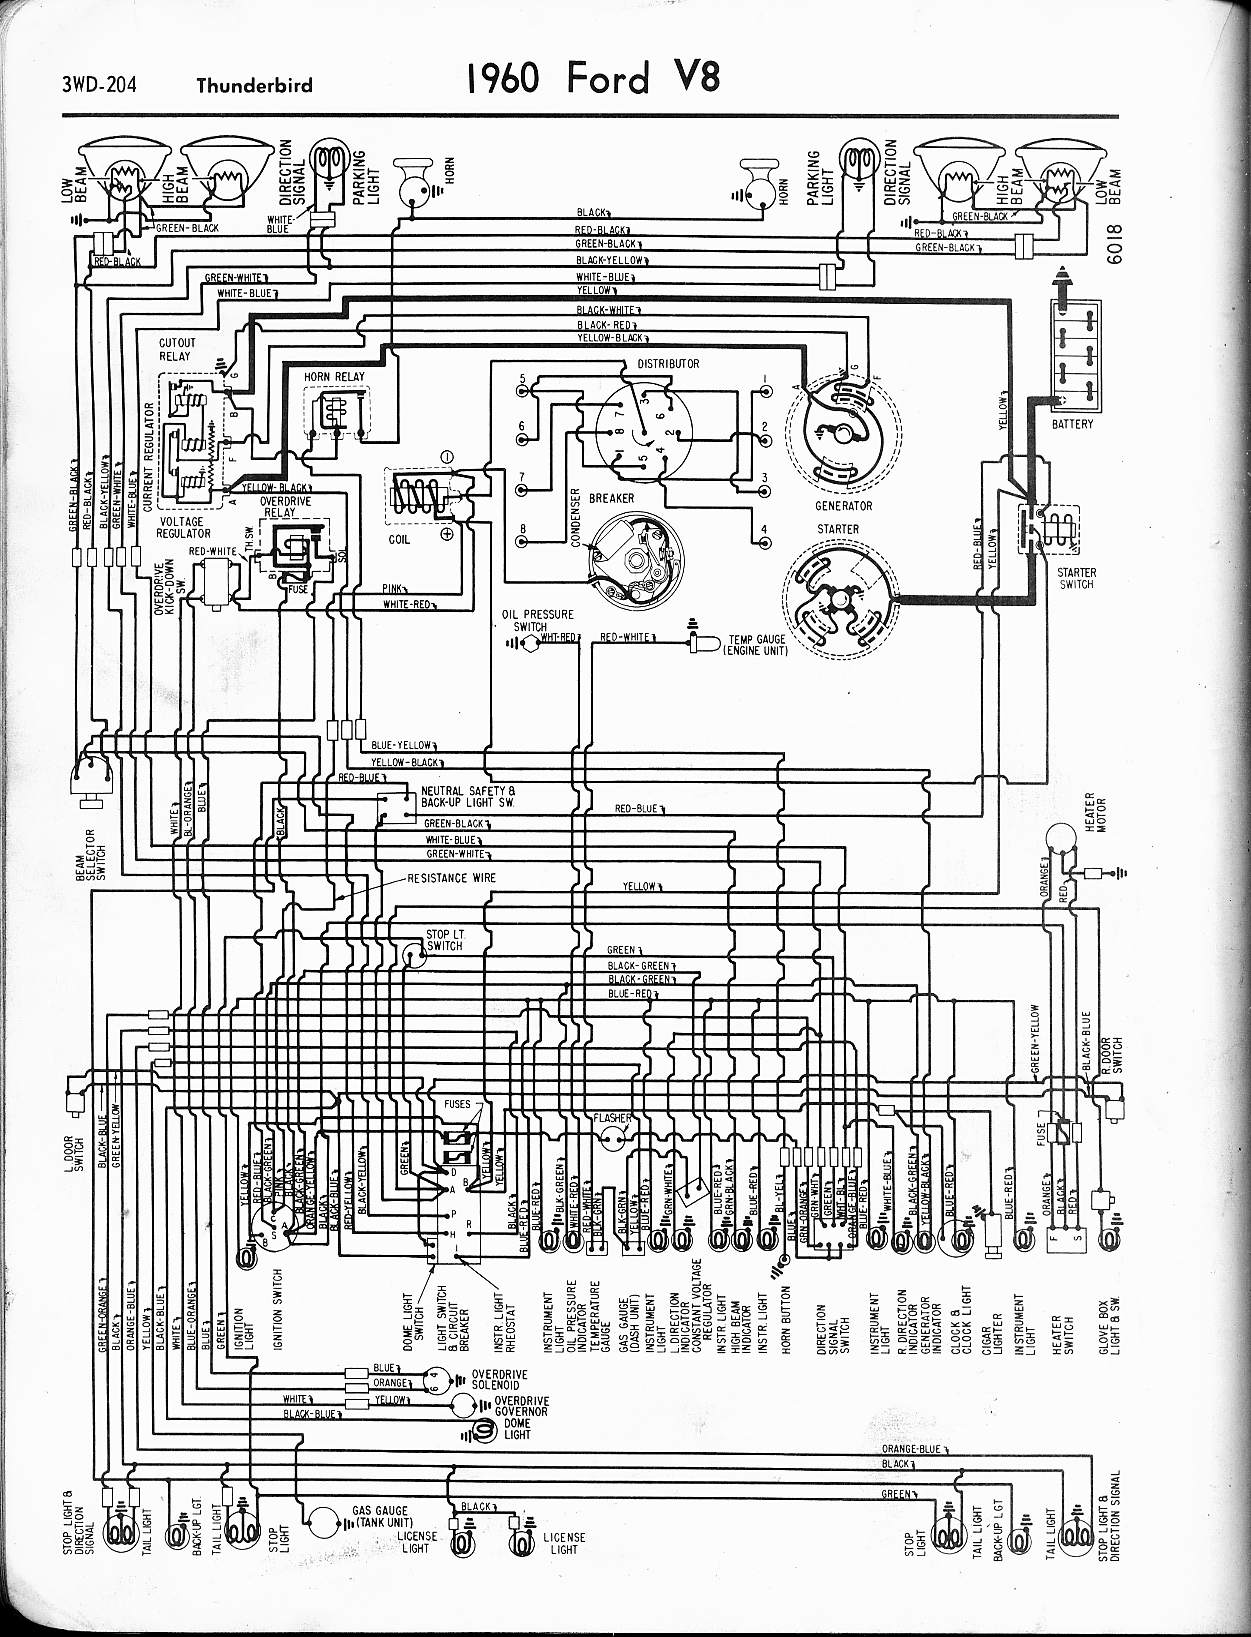 MWire5765 204 57 65 ford wiring diagrams 84 Ford Thunderbird Wiring Diagram at bakdesigns.co